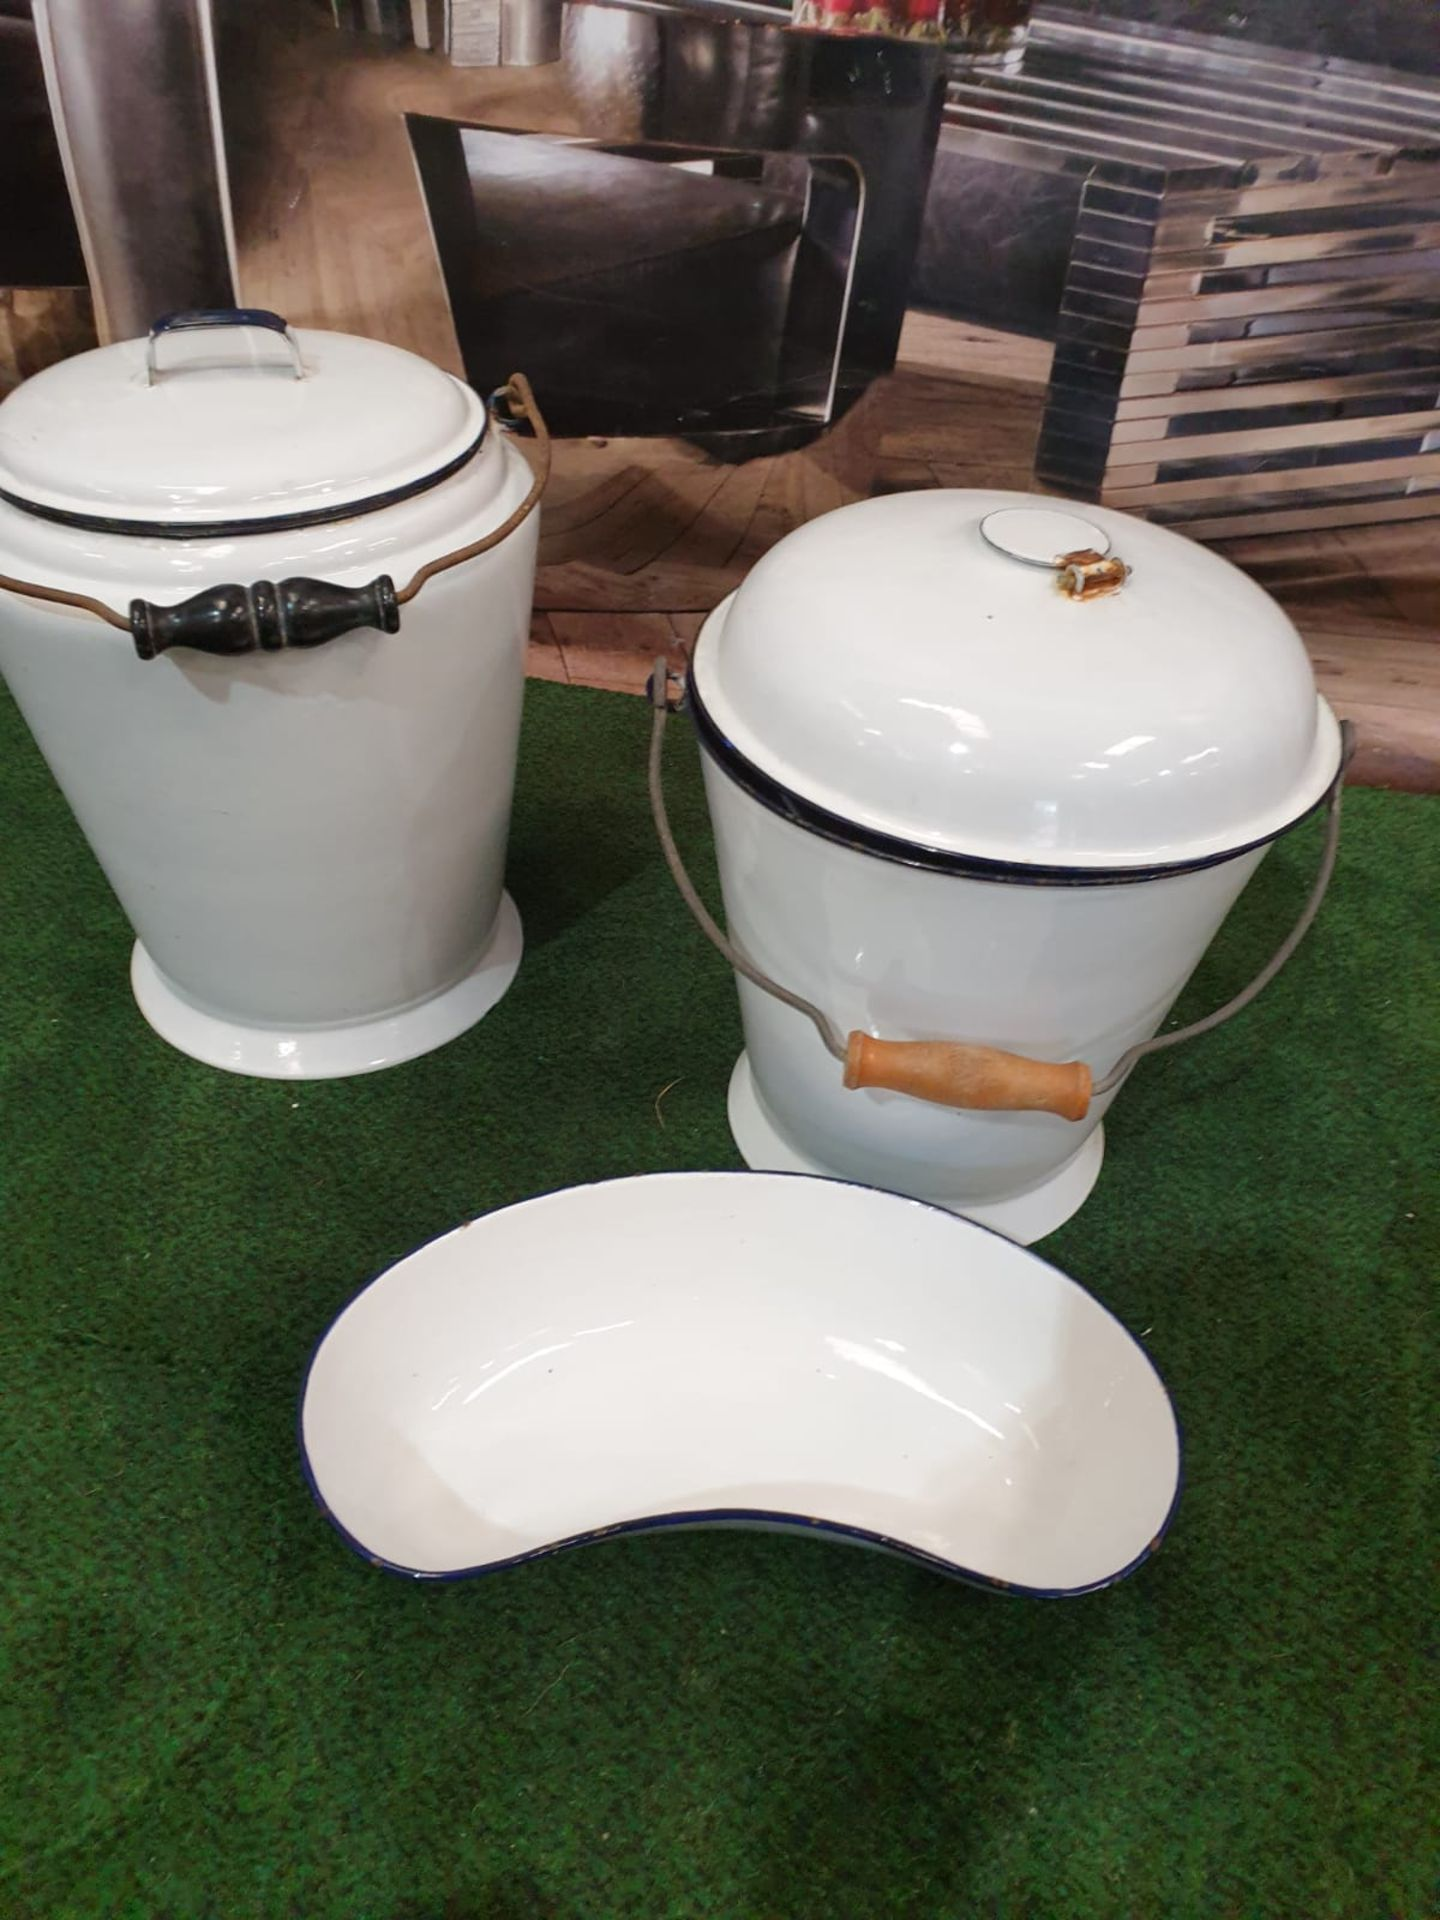 White enamel ware compirsing of a Bucket, pail and kidney bowl - Image 3 of 3